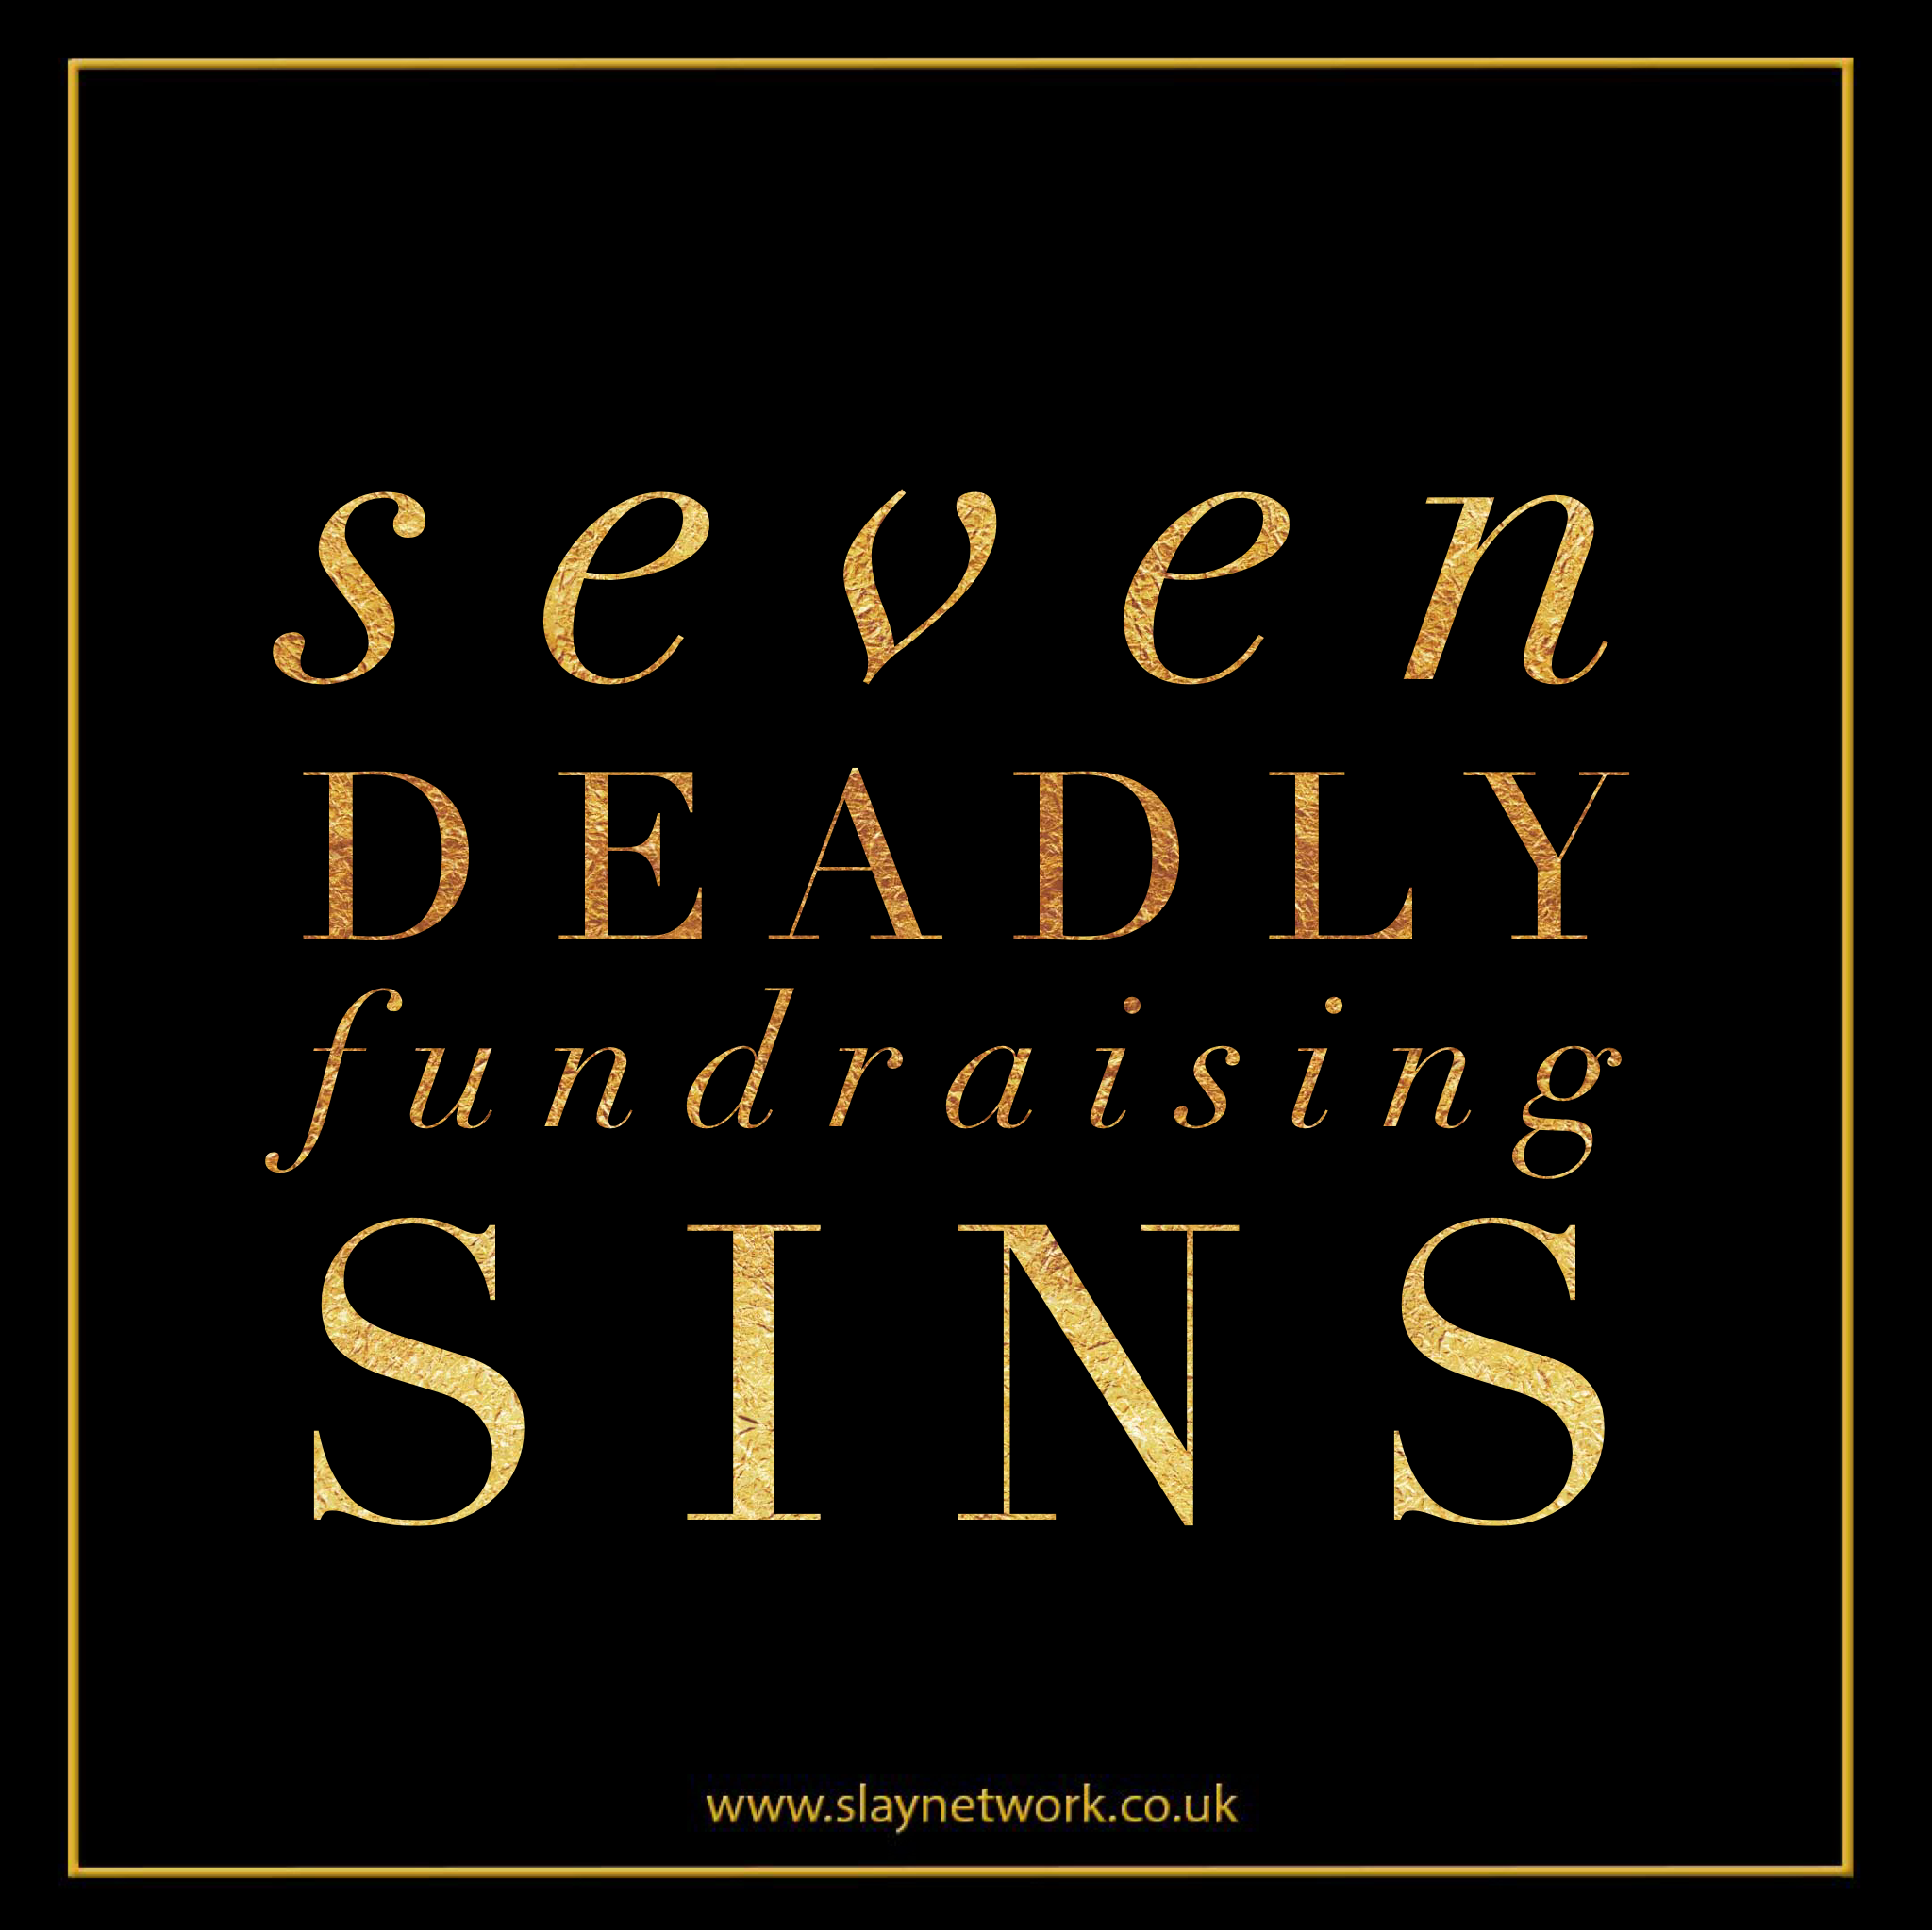 The seven deadly fundraising sins that could kill your startup